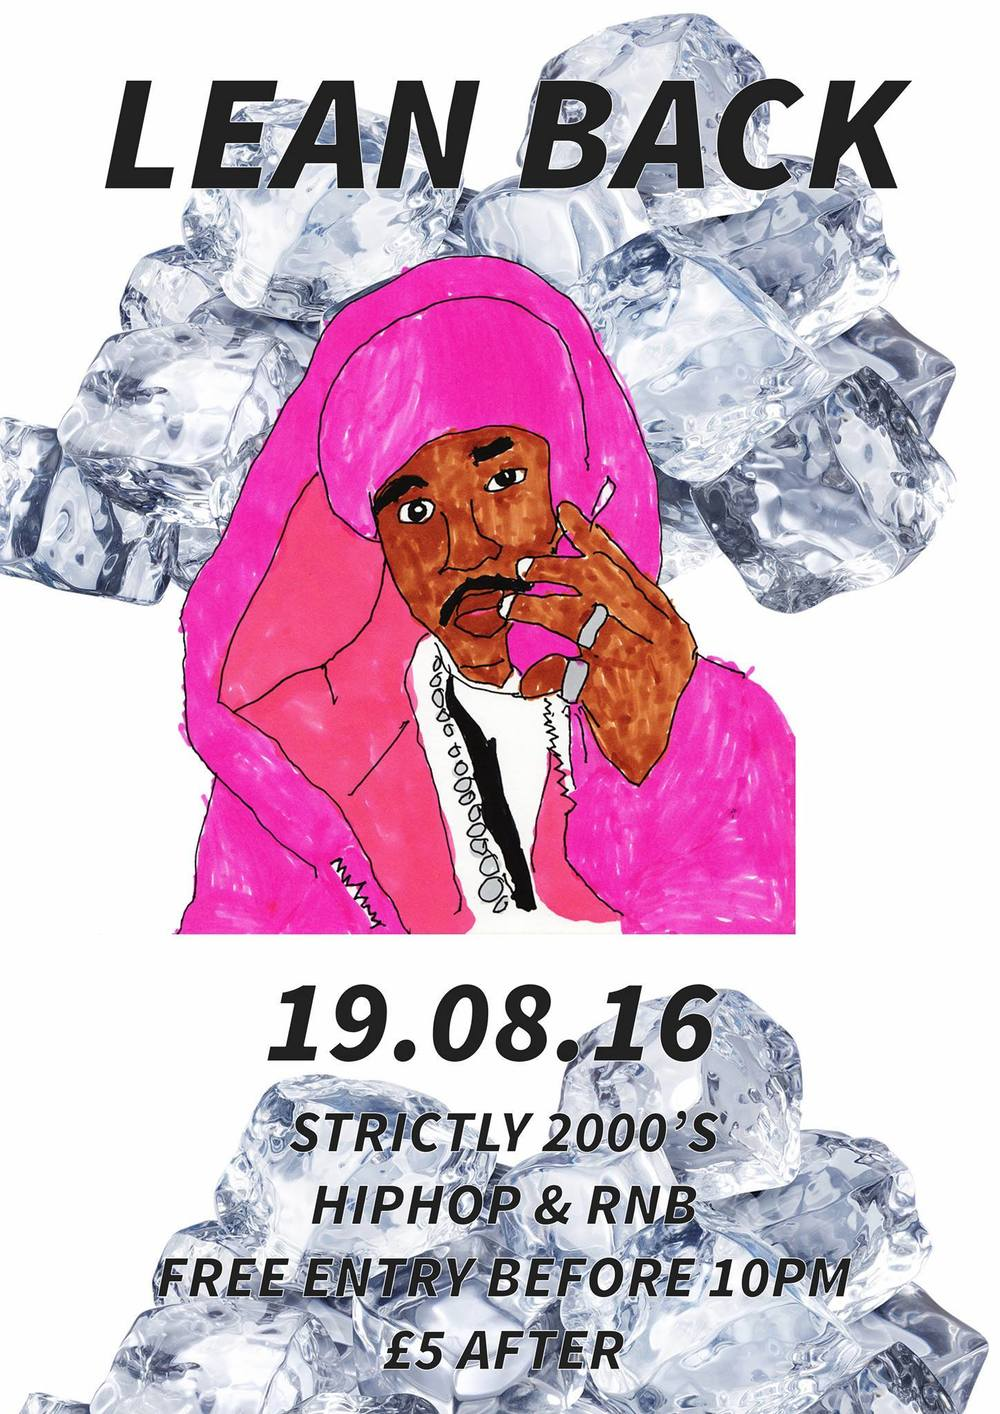 Hey!    Think 2000s     Think MTV    Think music videos    Think the best hip hop & rnb in this ~GOLDEN~ era    FREE b4 10pm     £5 after all night - bring ID  DJs  oh annie oh & William Michael & friends  Simples!